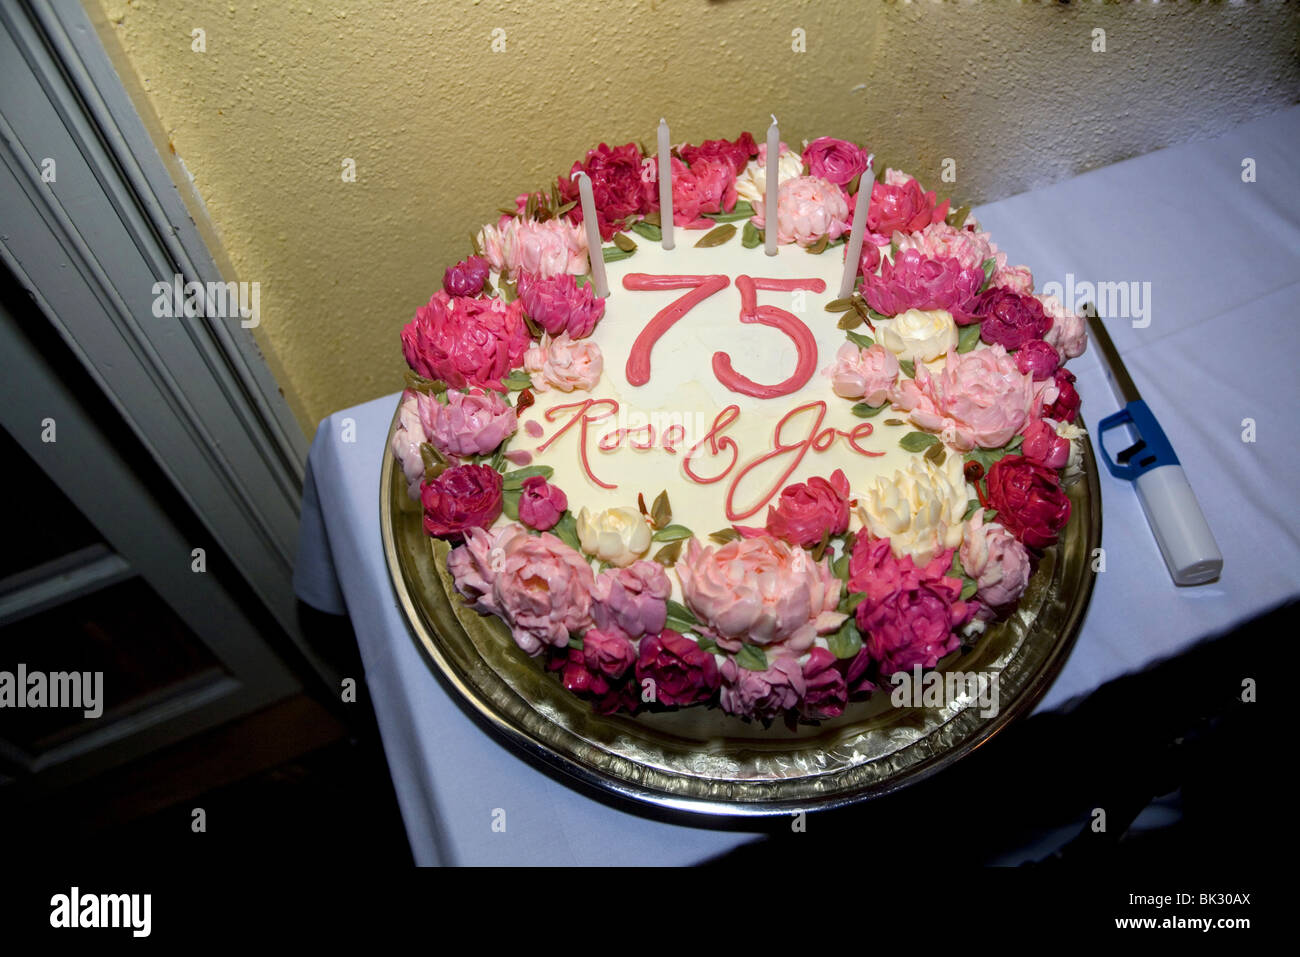 75th wedding anniversary cake. - Stock Image